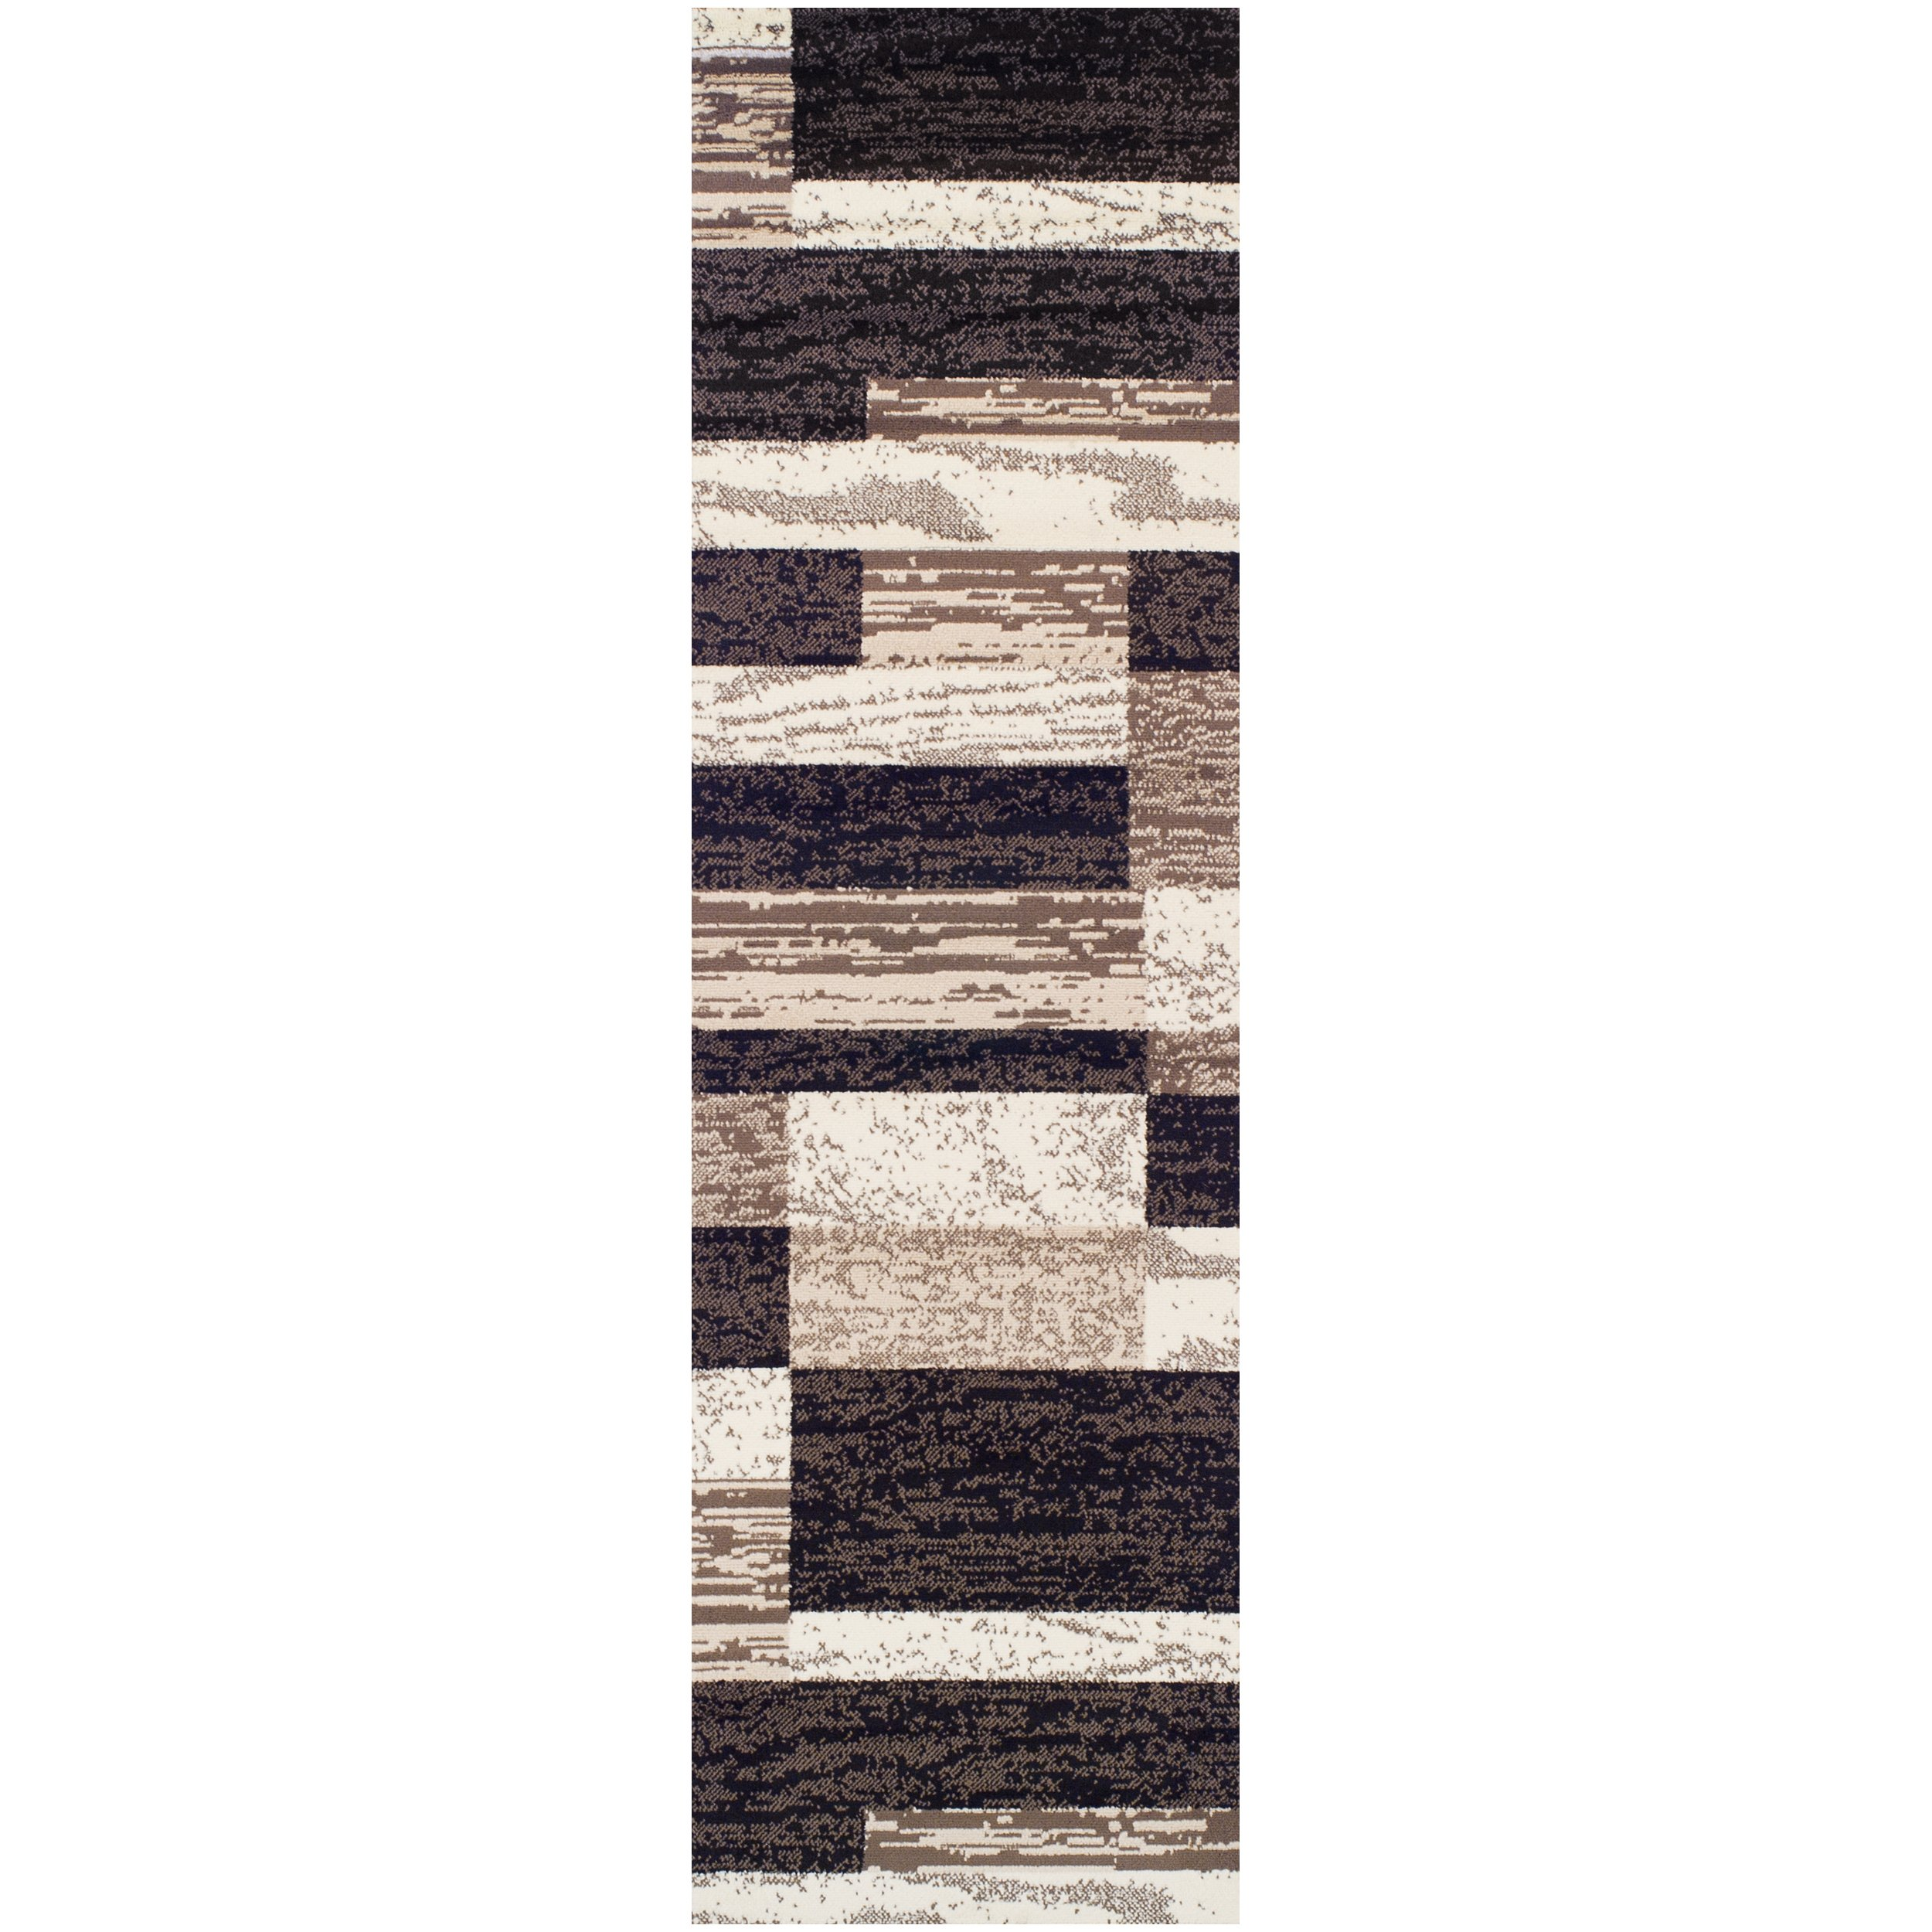 """Superior Modern Rockwood Collection Area Rug, 8mm Pile Height with Jute Backing, Textured Geometric Brick Design, Anti-Static, Water-Repellent Rugs - Chocolate, 2'7"""" x 8' Runner"""